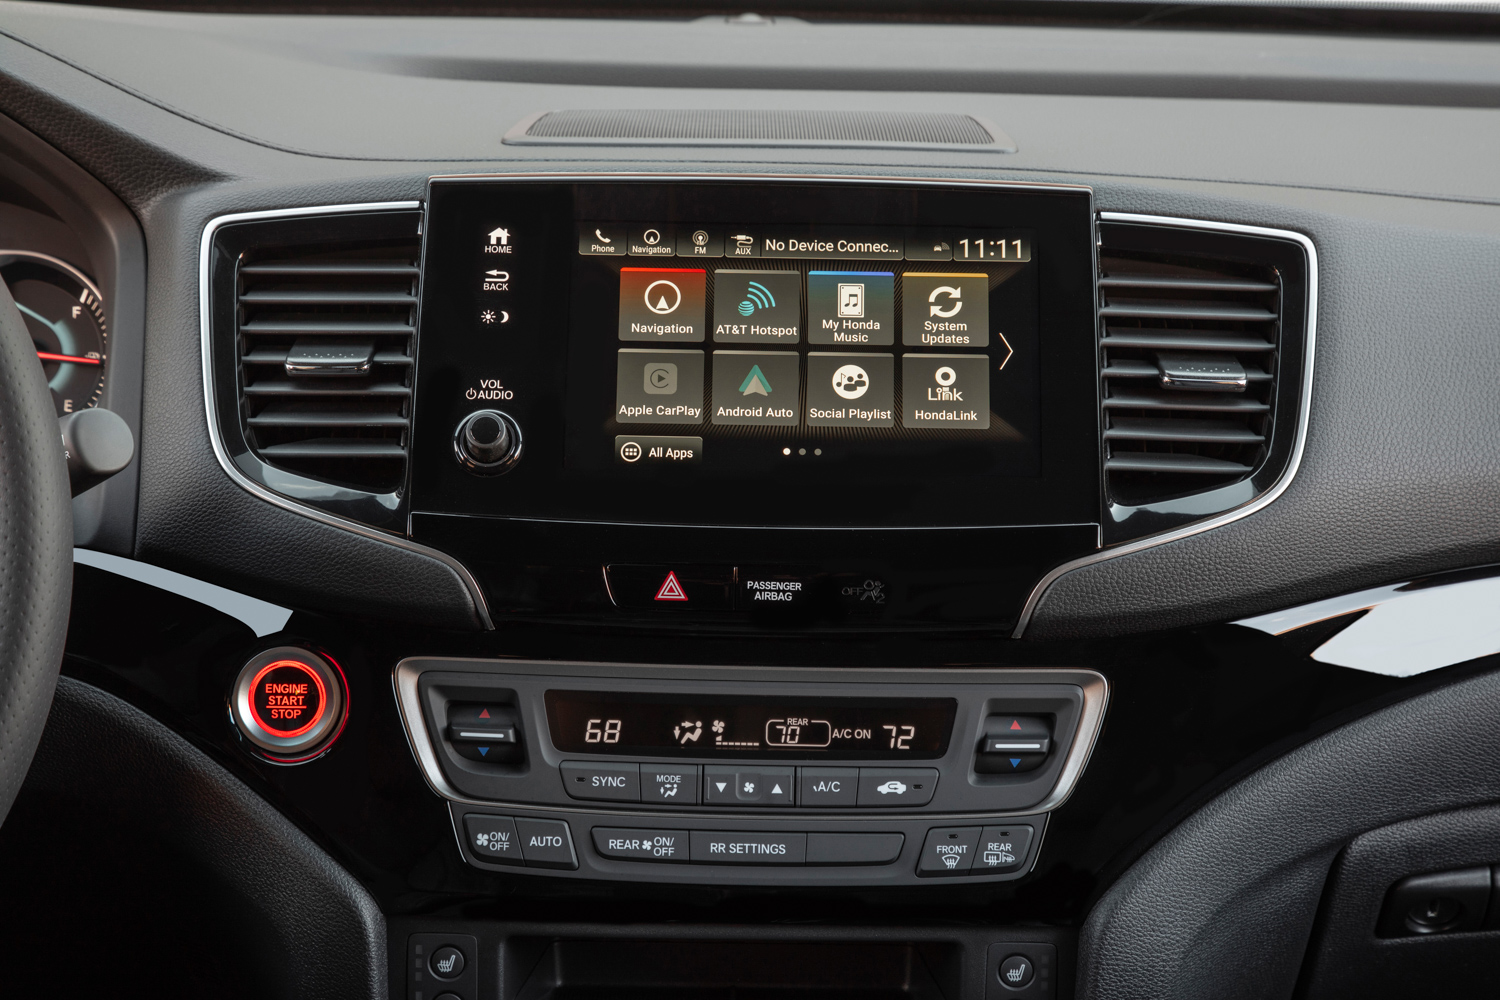 2019 Honda Passport infotainment screen